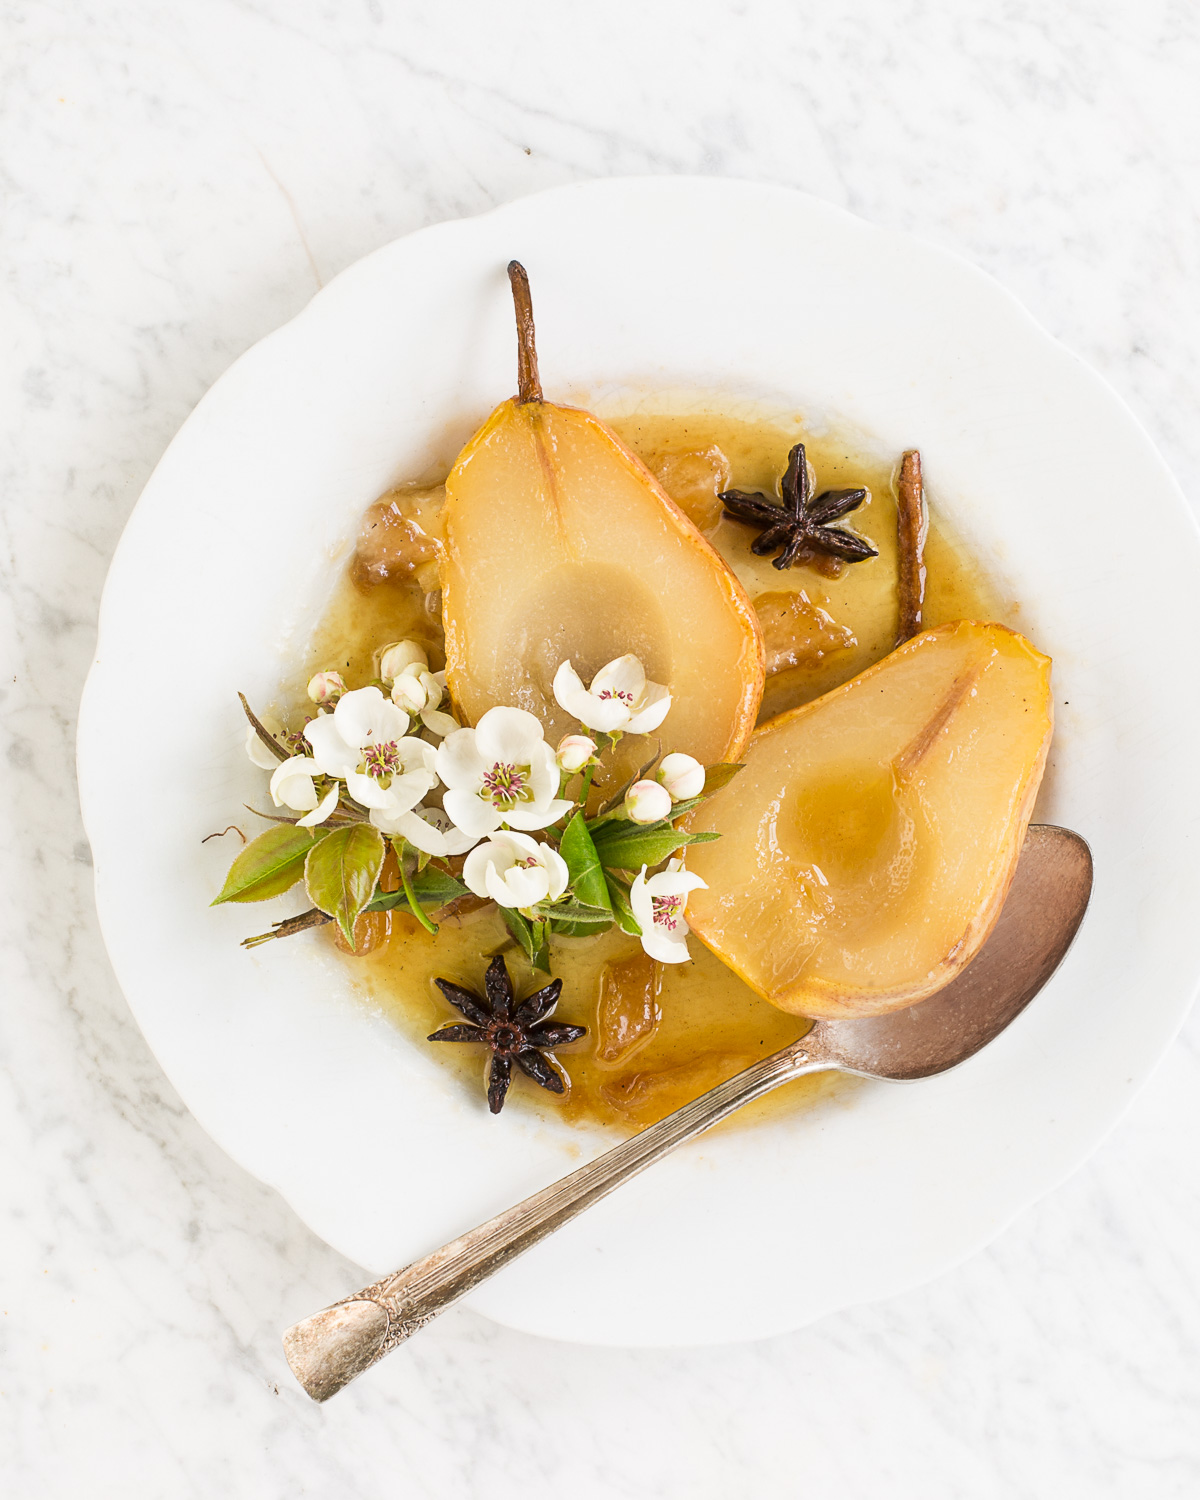 Baked Pears with Vanilla, Cinnamon, and Star Anise